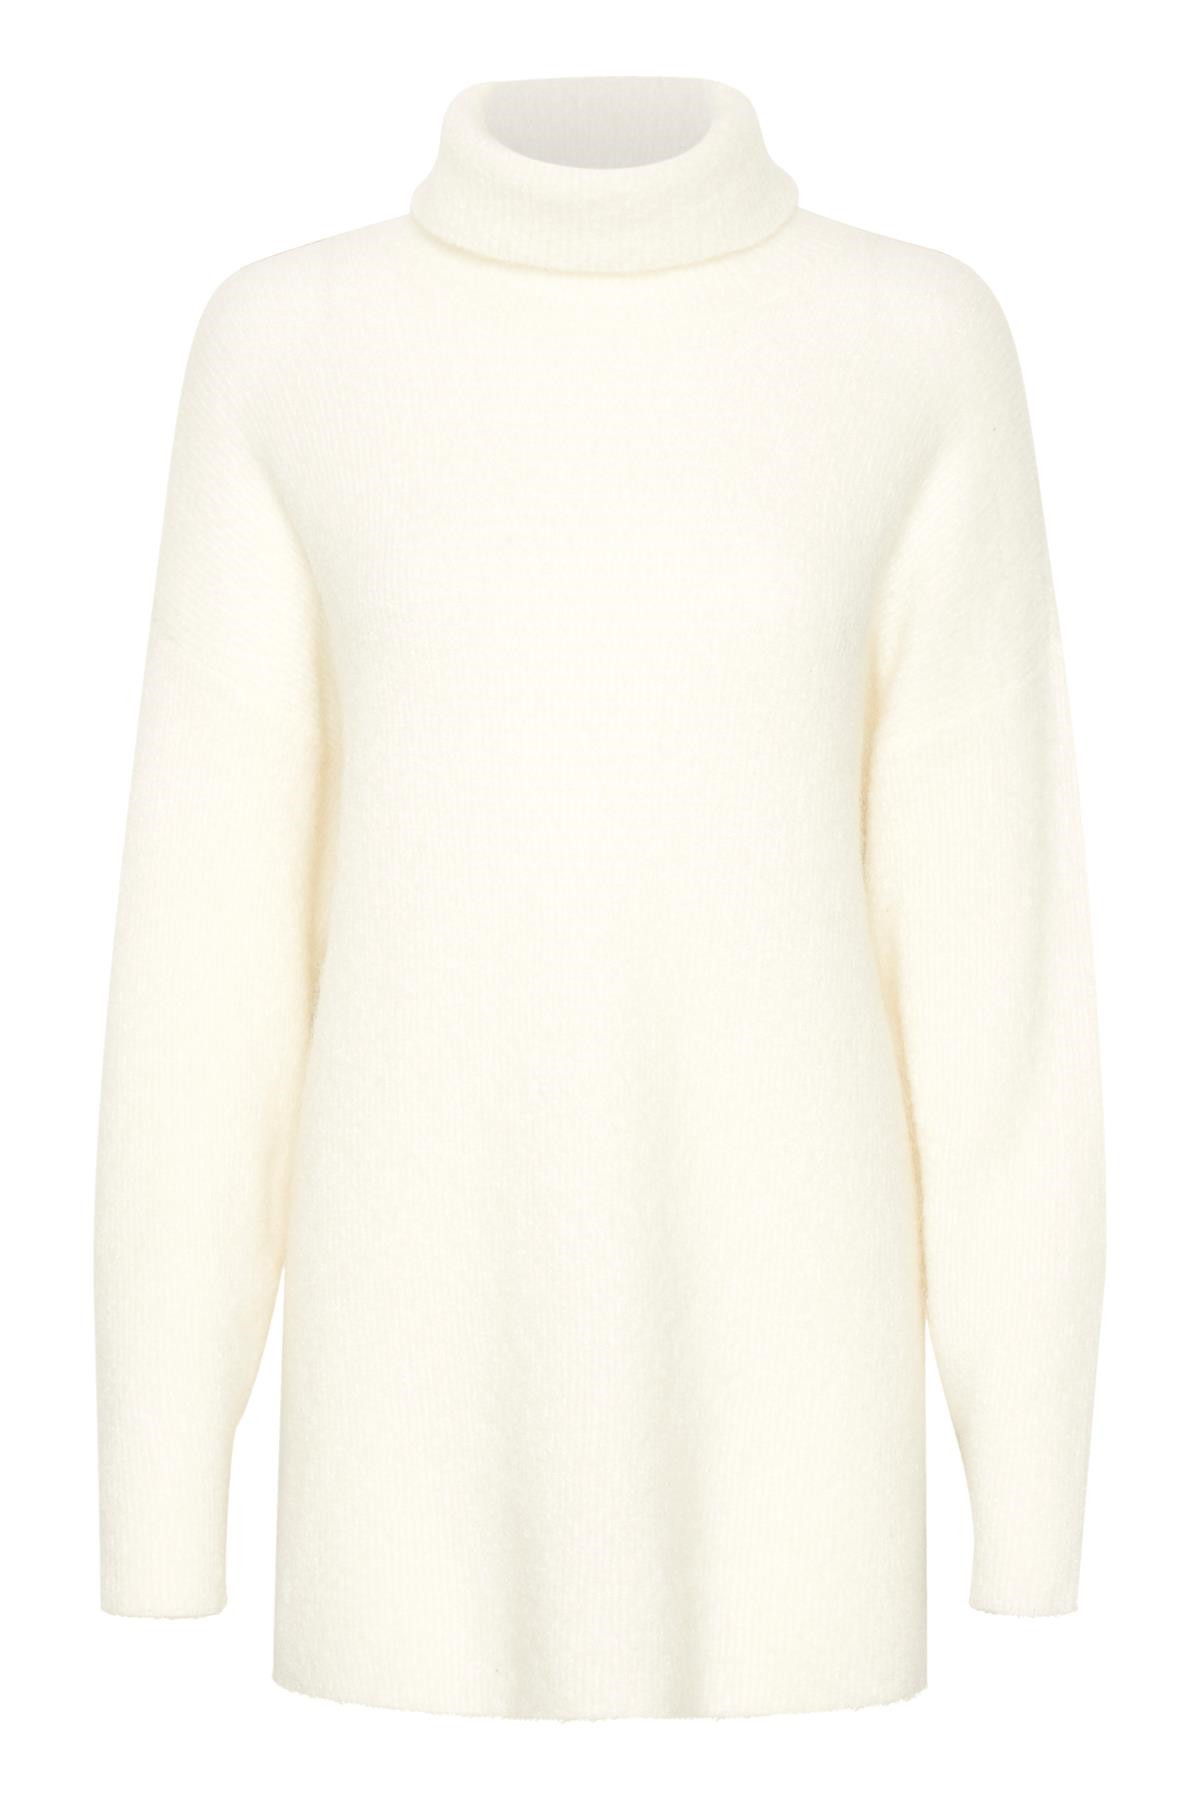 Image of   GESTUZ LIVIA SOLID ROLLNECK (Cloud Dancer 90075, XS)